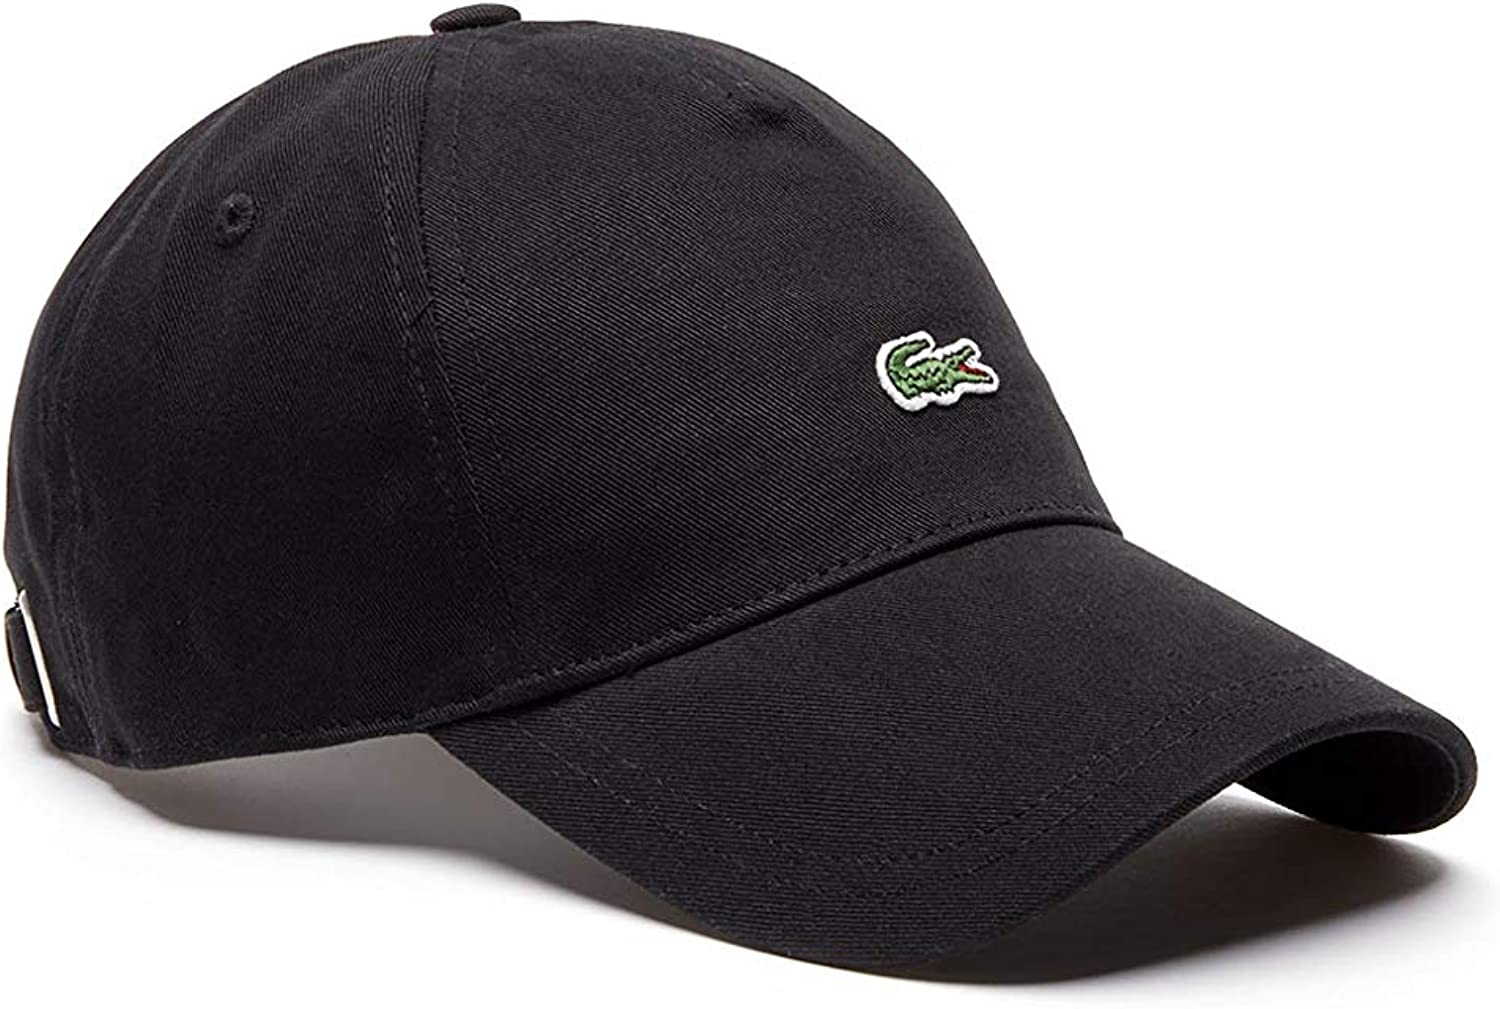 Lacoste Mens Embroidered Crocodile Cotton Cap